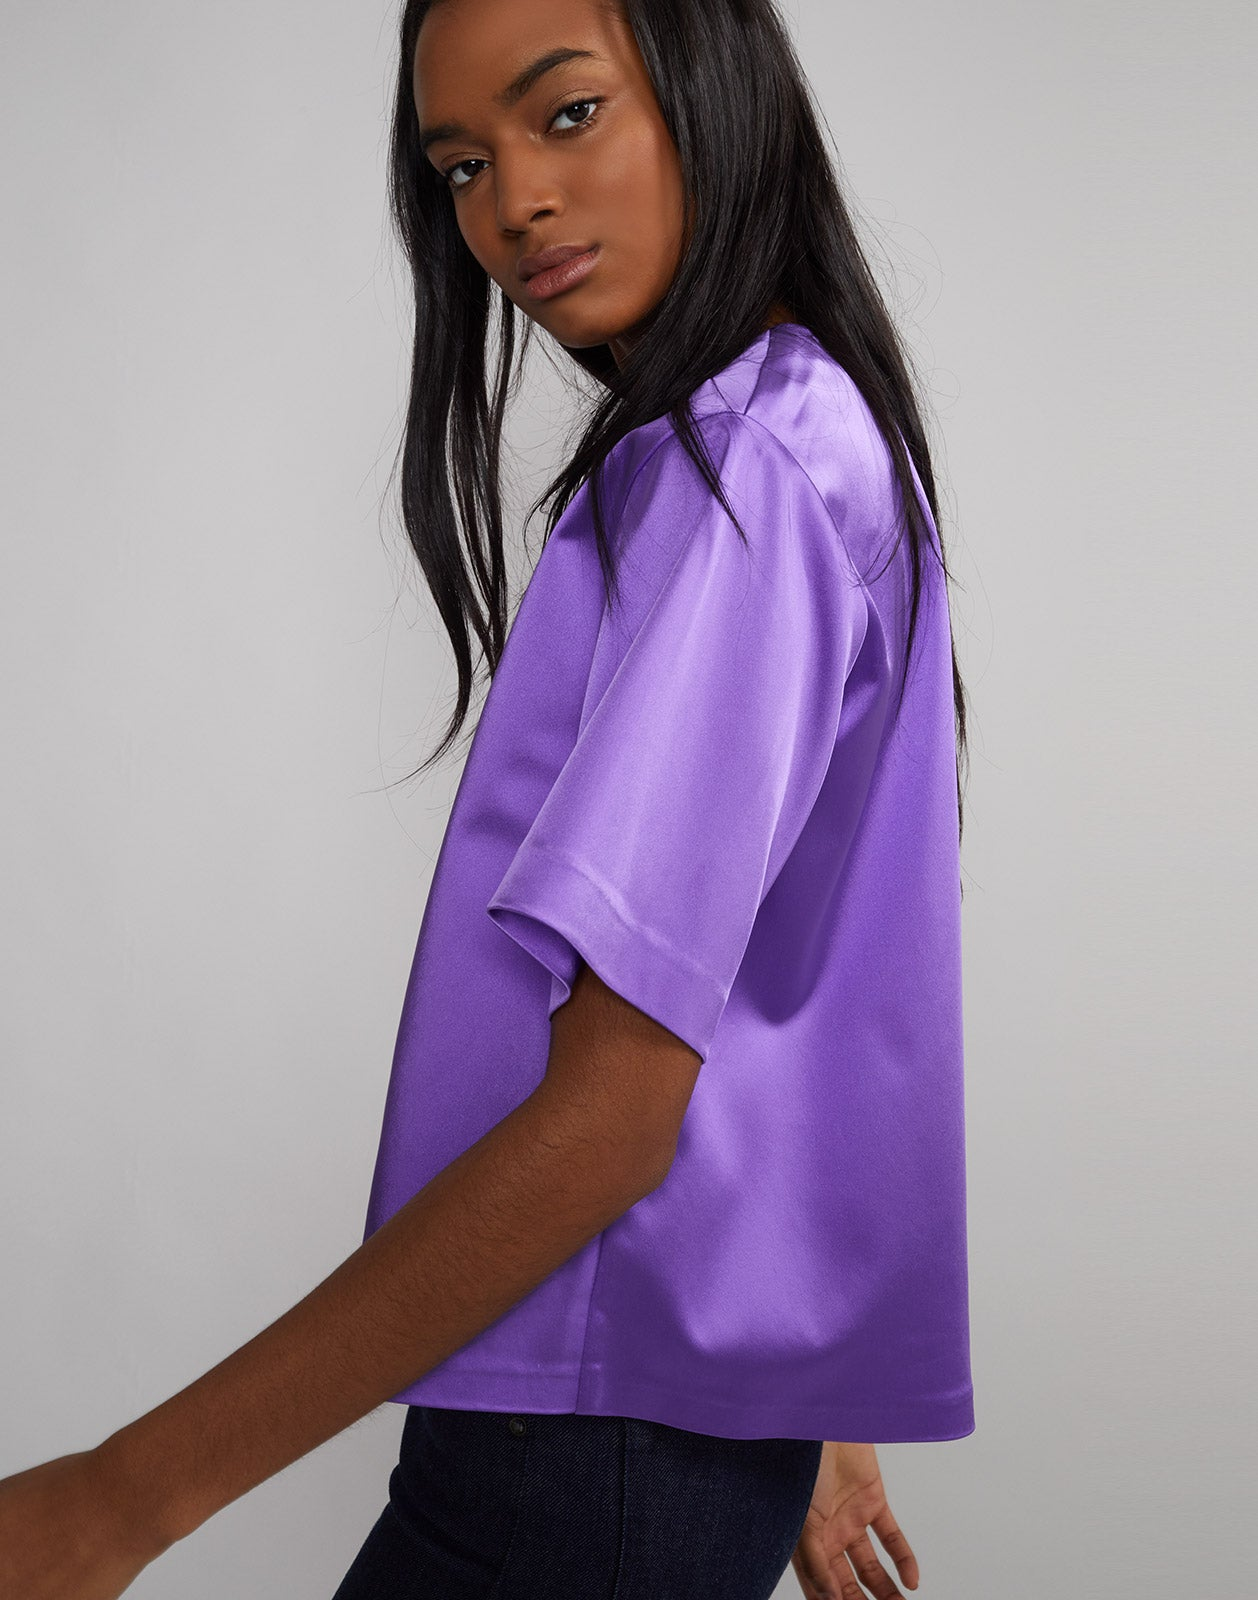 Side view of model wearing Rush Stretch Satin T-Shirt in ultraviolet.